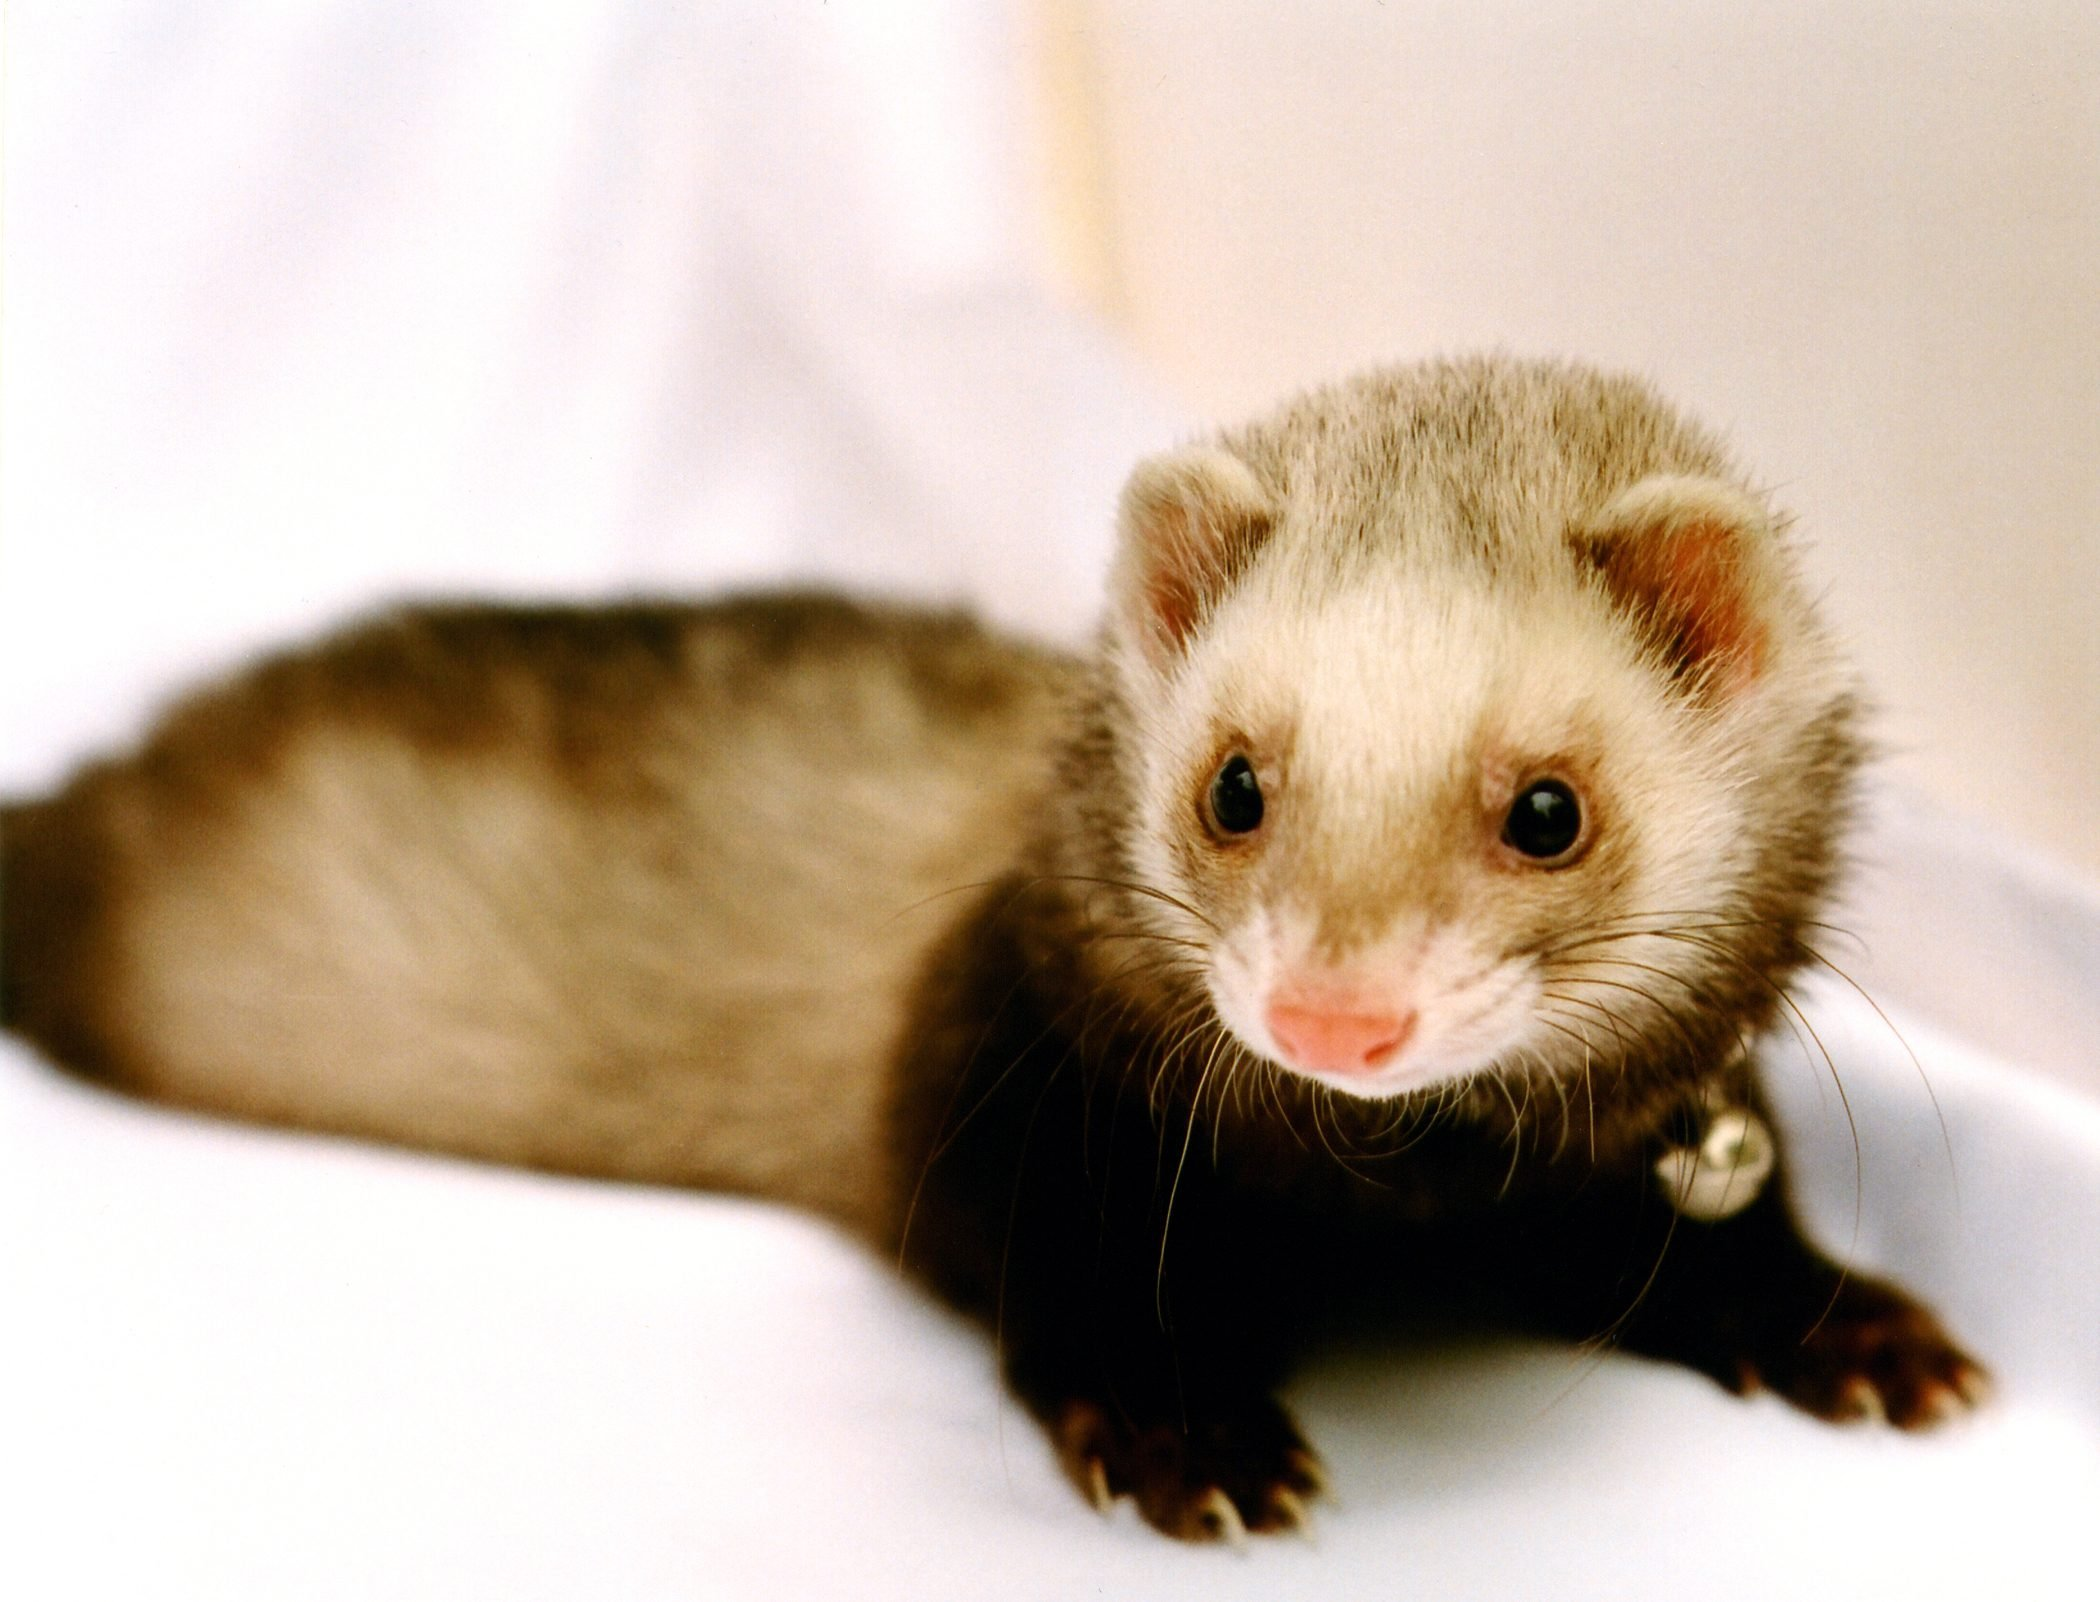 Chewy the Sable Ferret